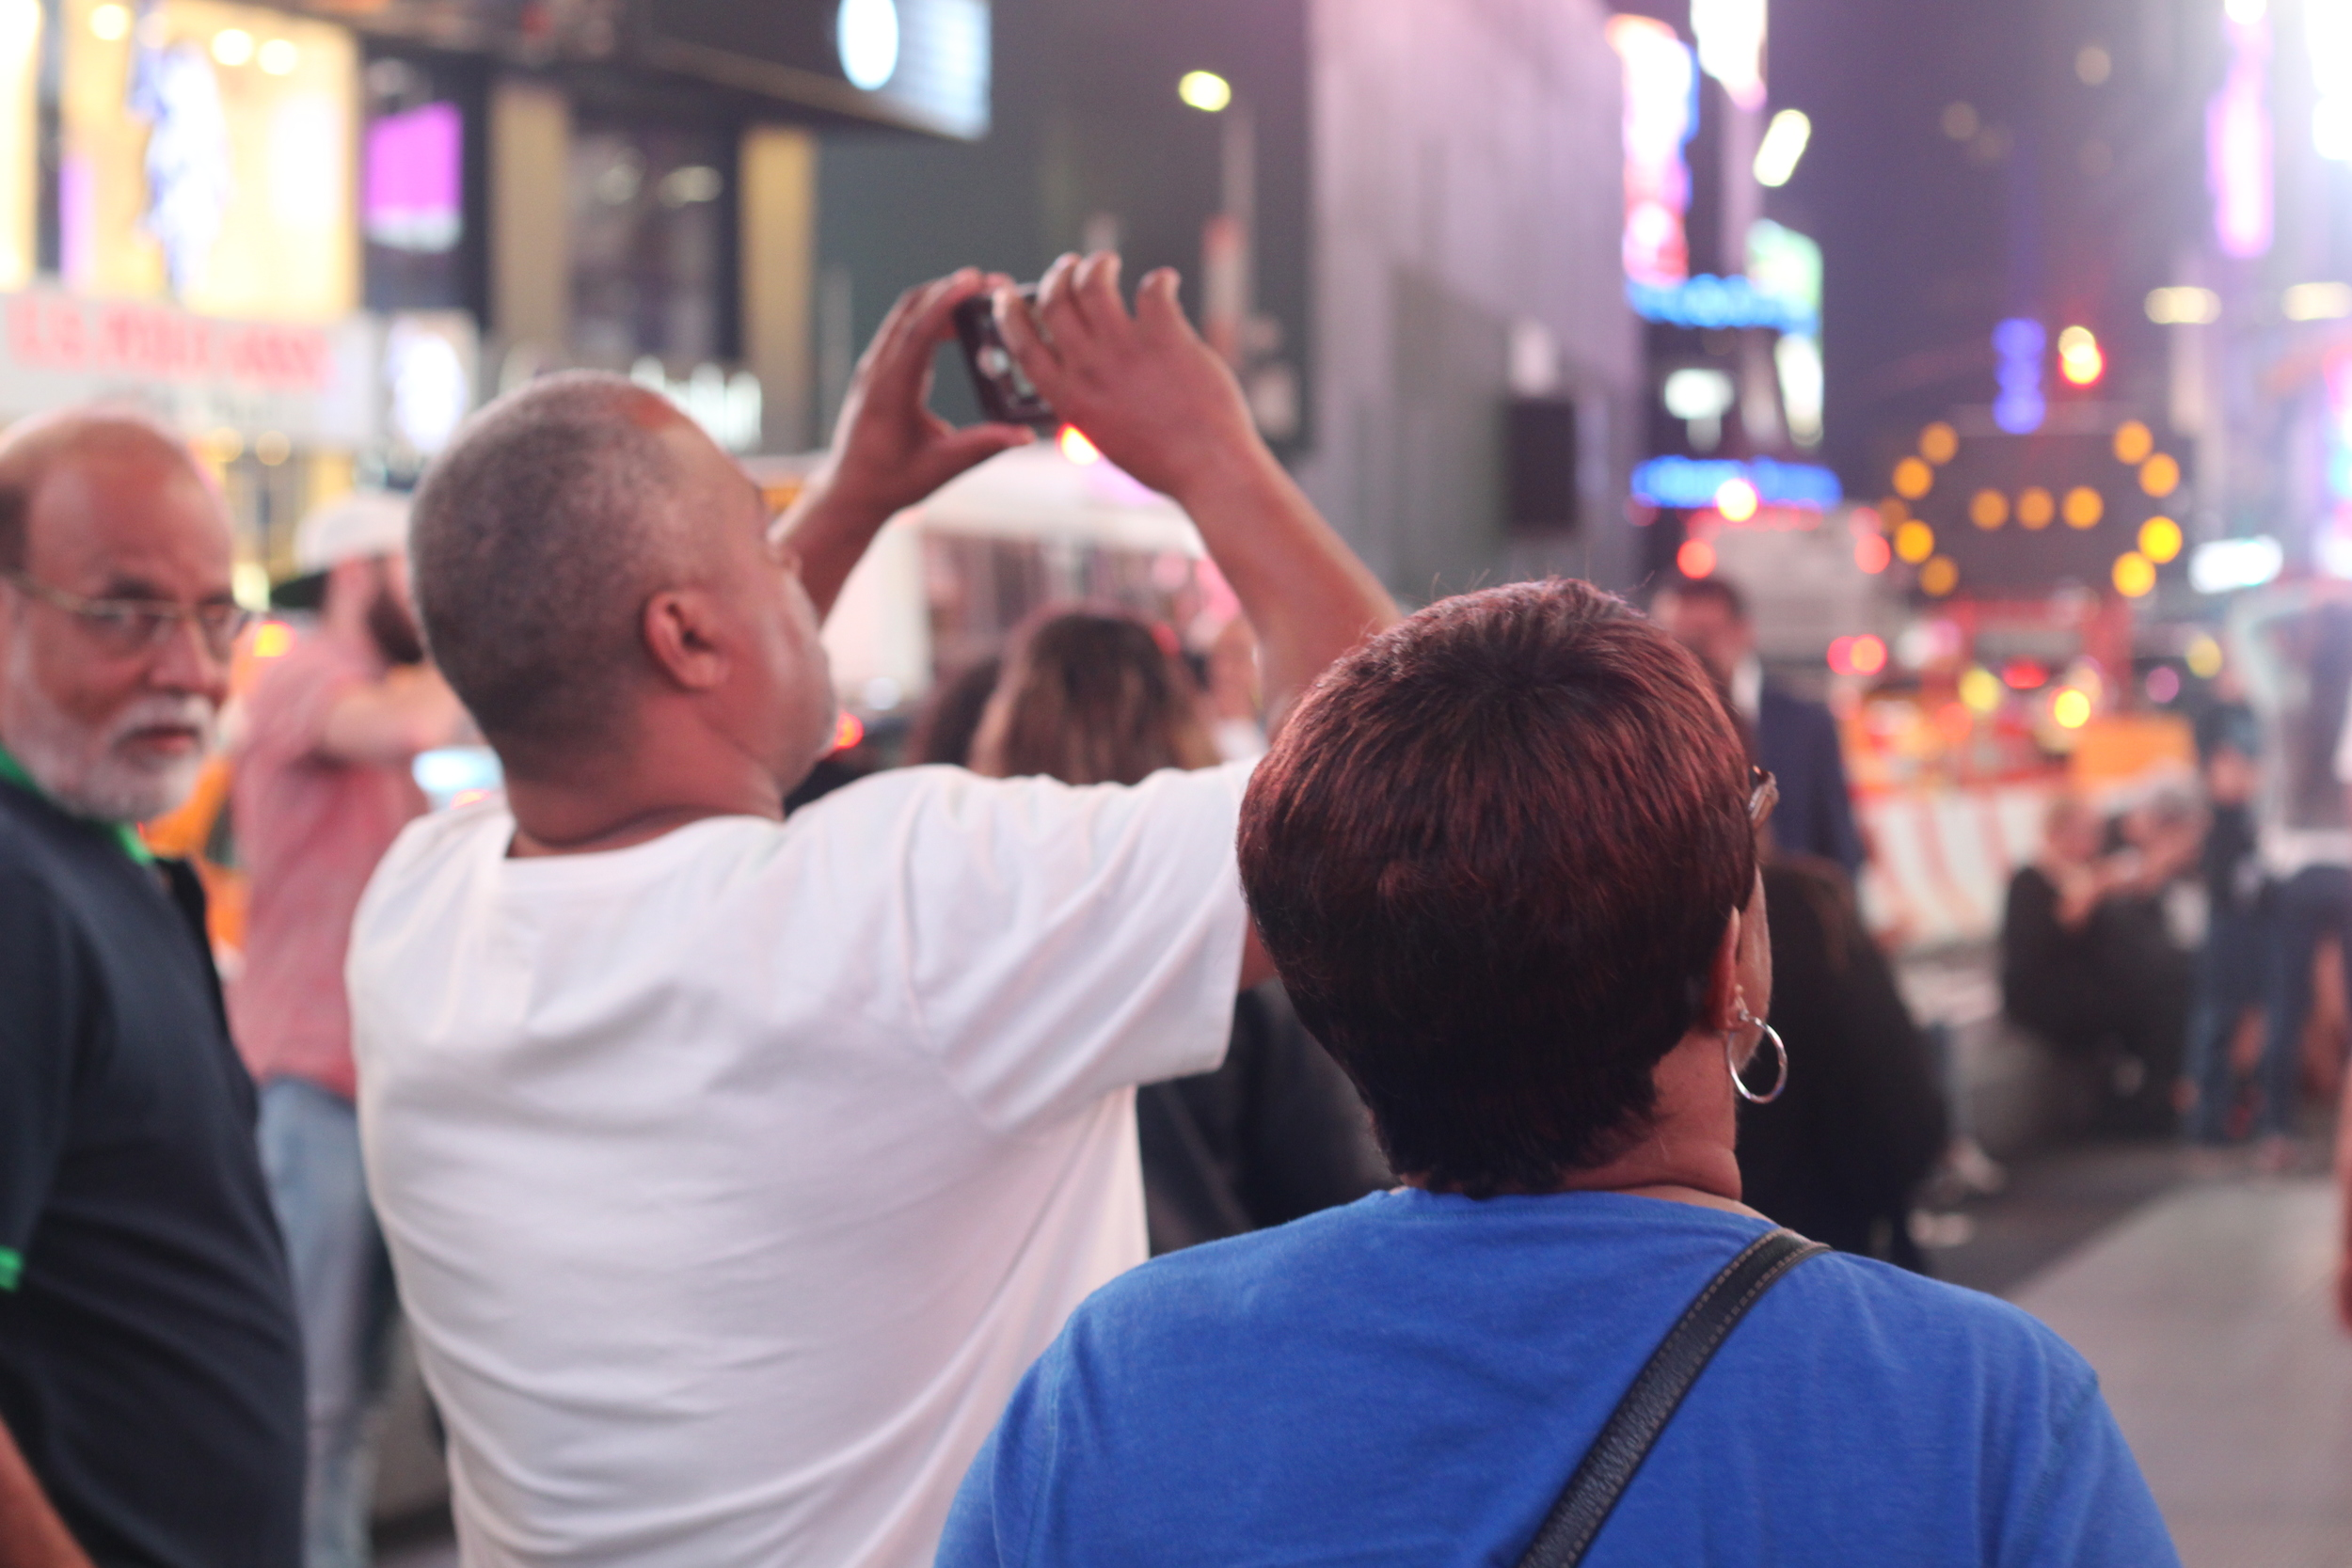 My parents came to New York City to visit me, recently, and insisted on going to Times Square.